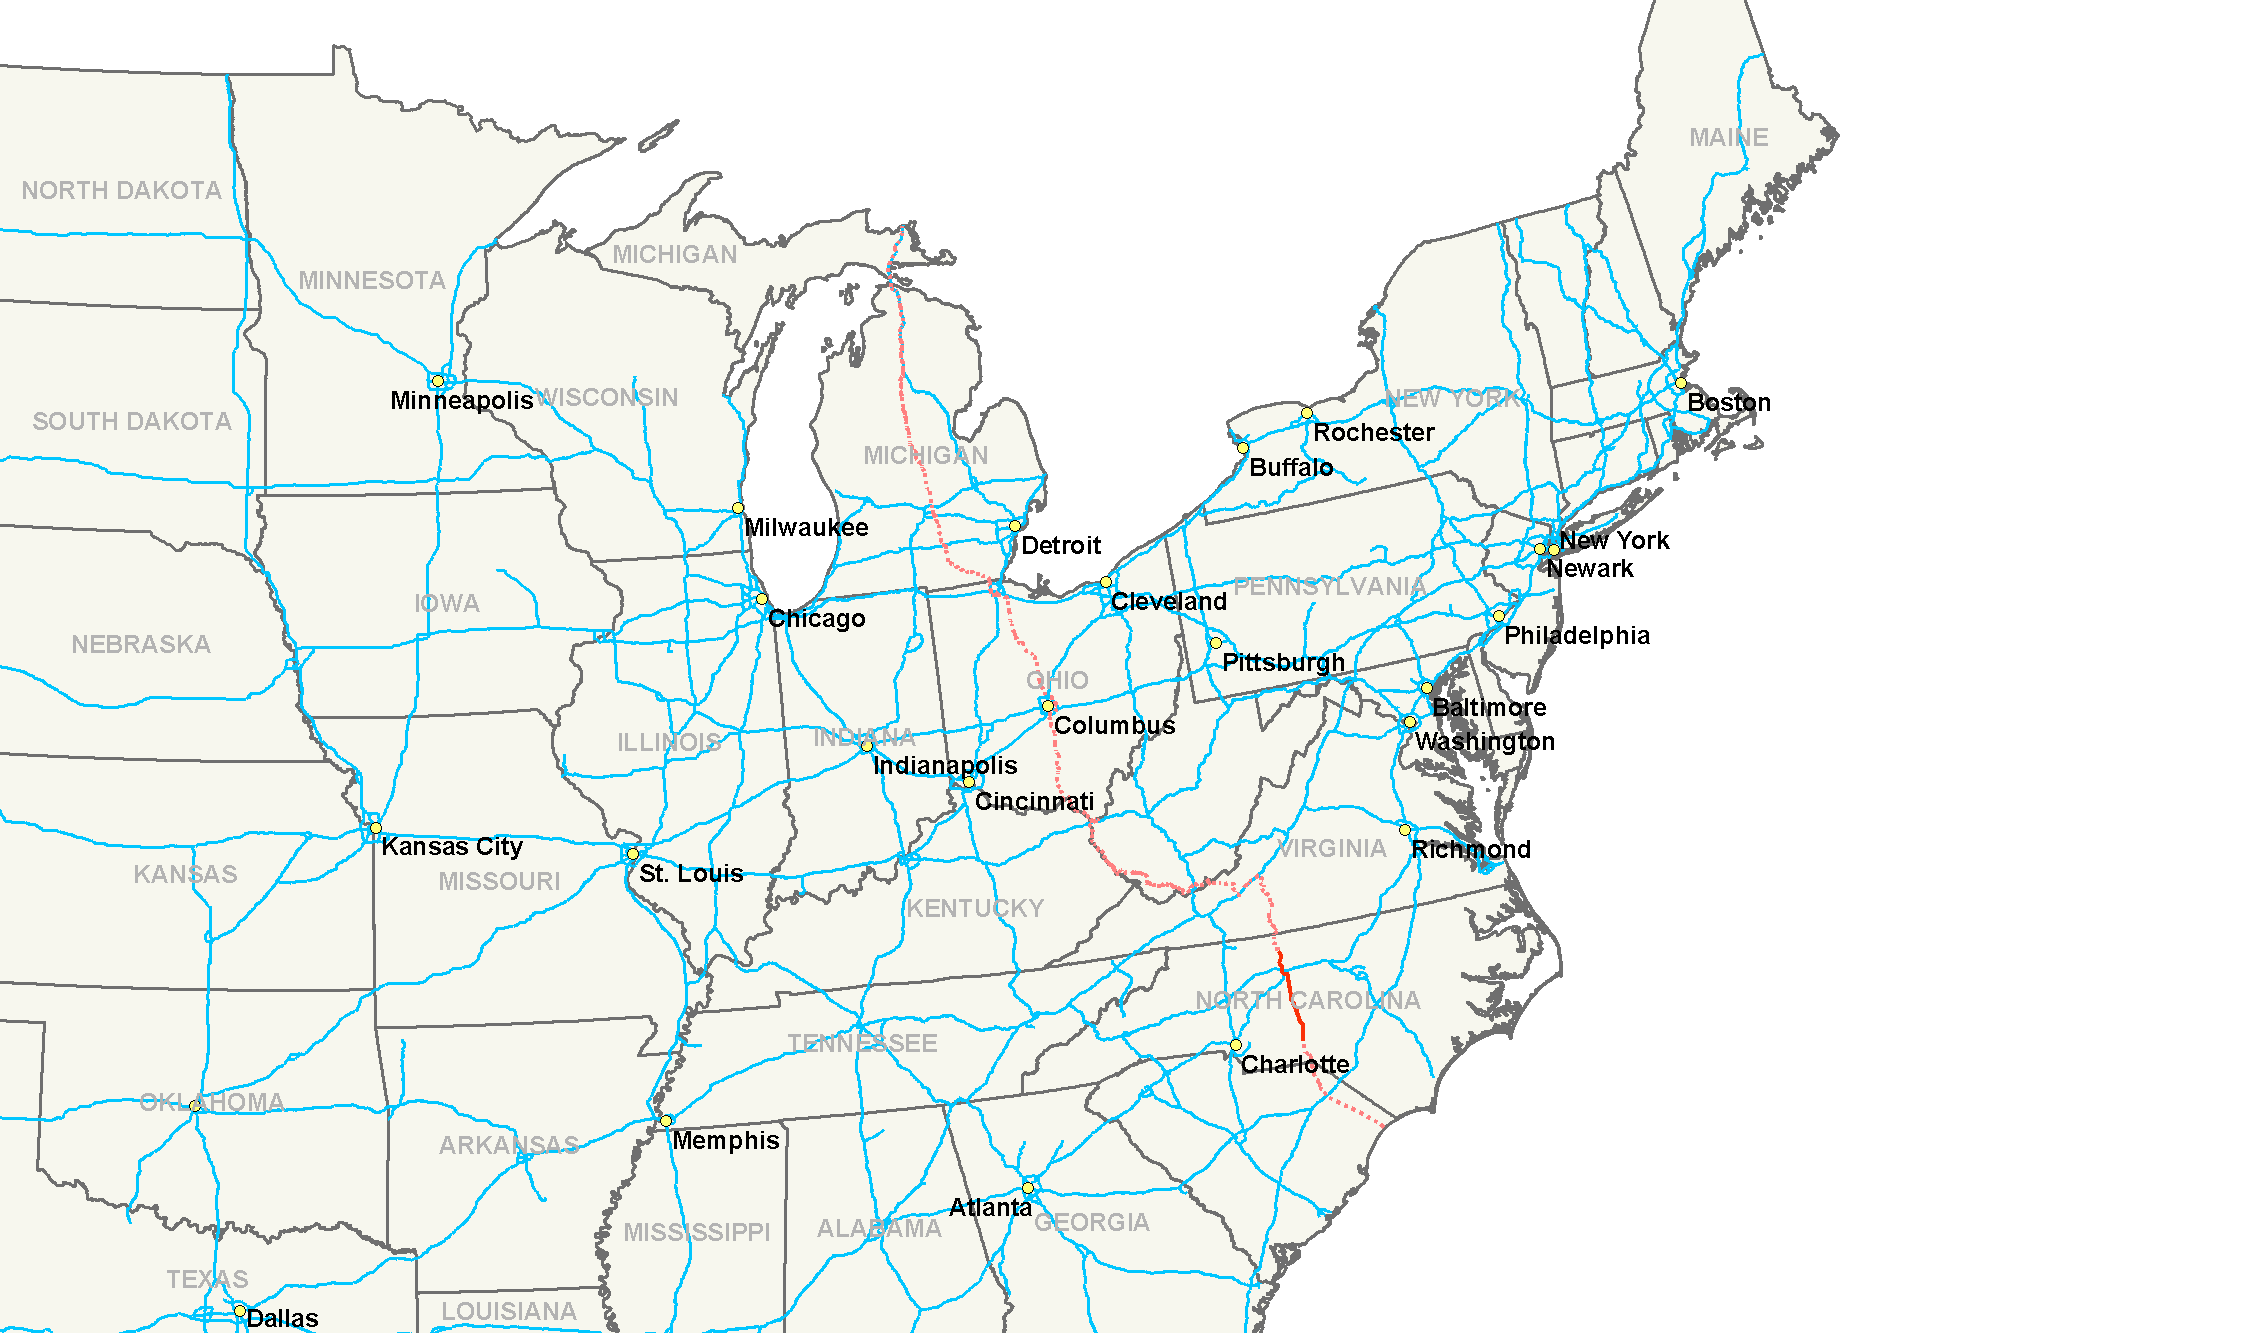 Interstate_73_Future_map.png